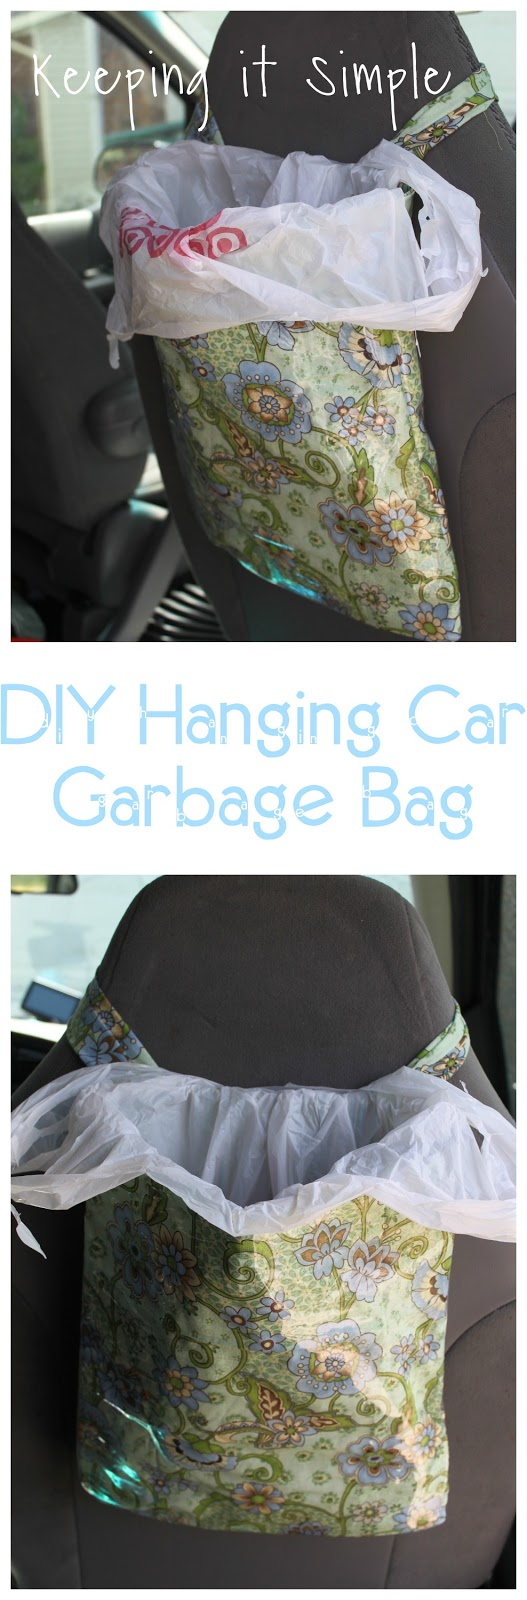 DIY hanging car garbage bag